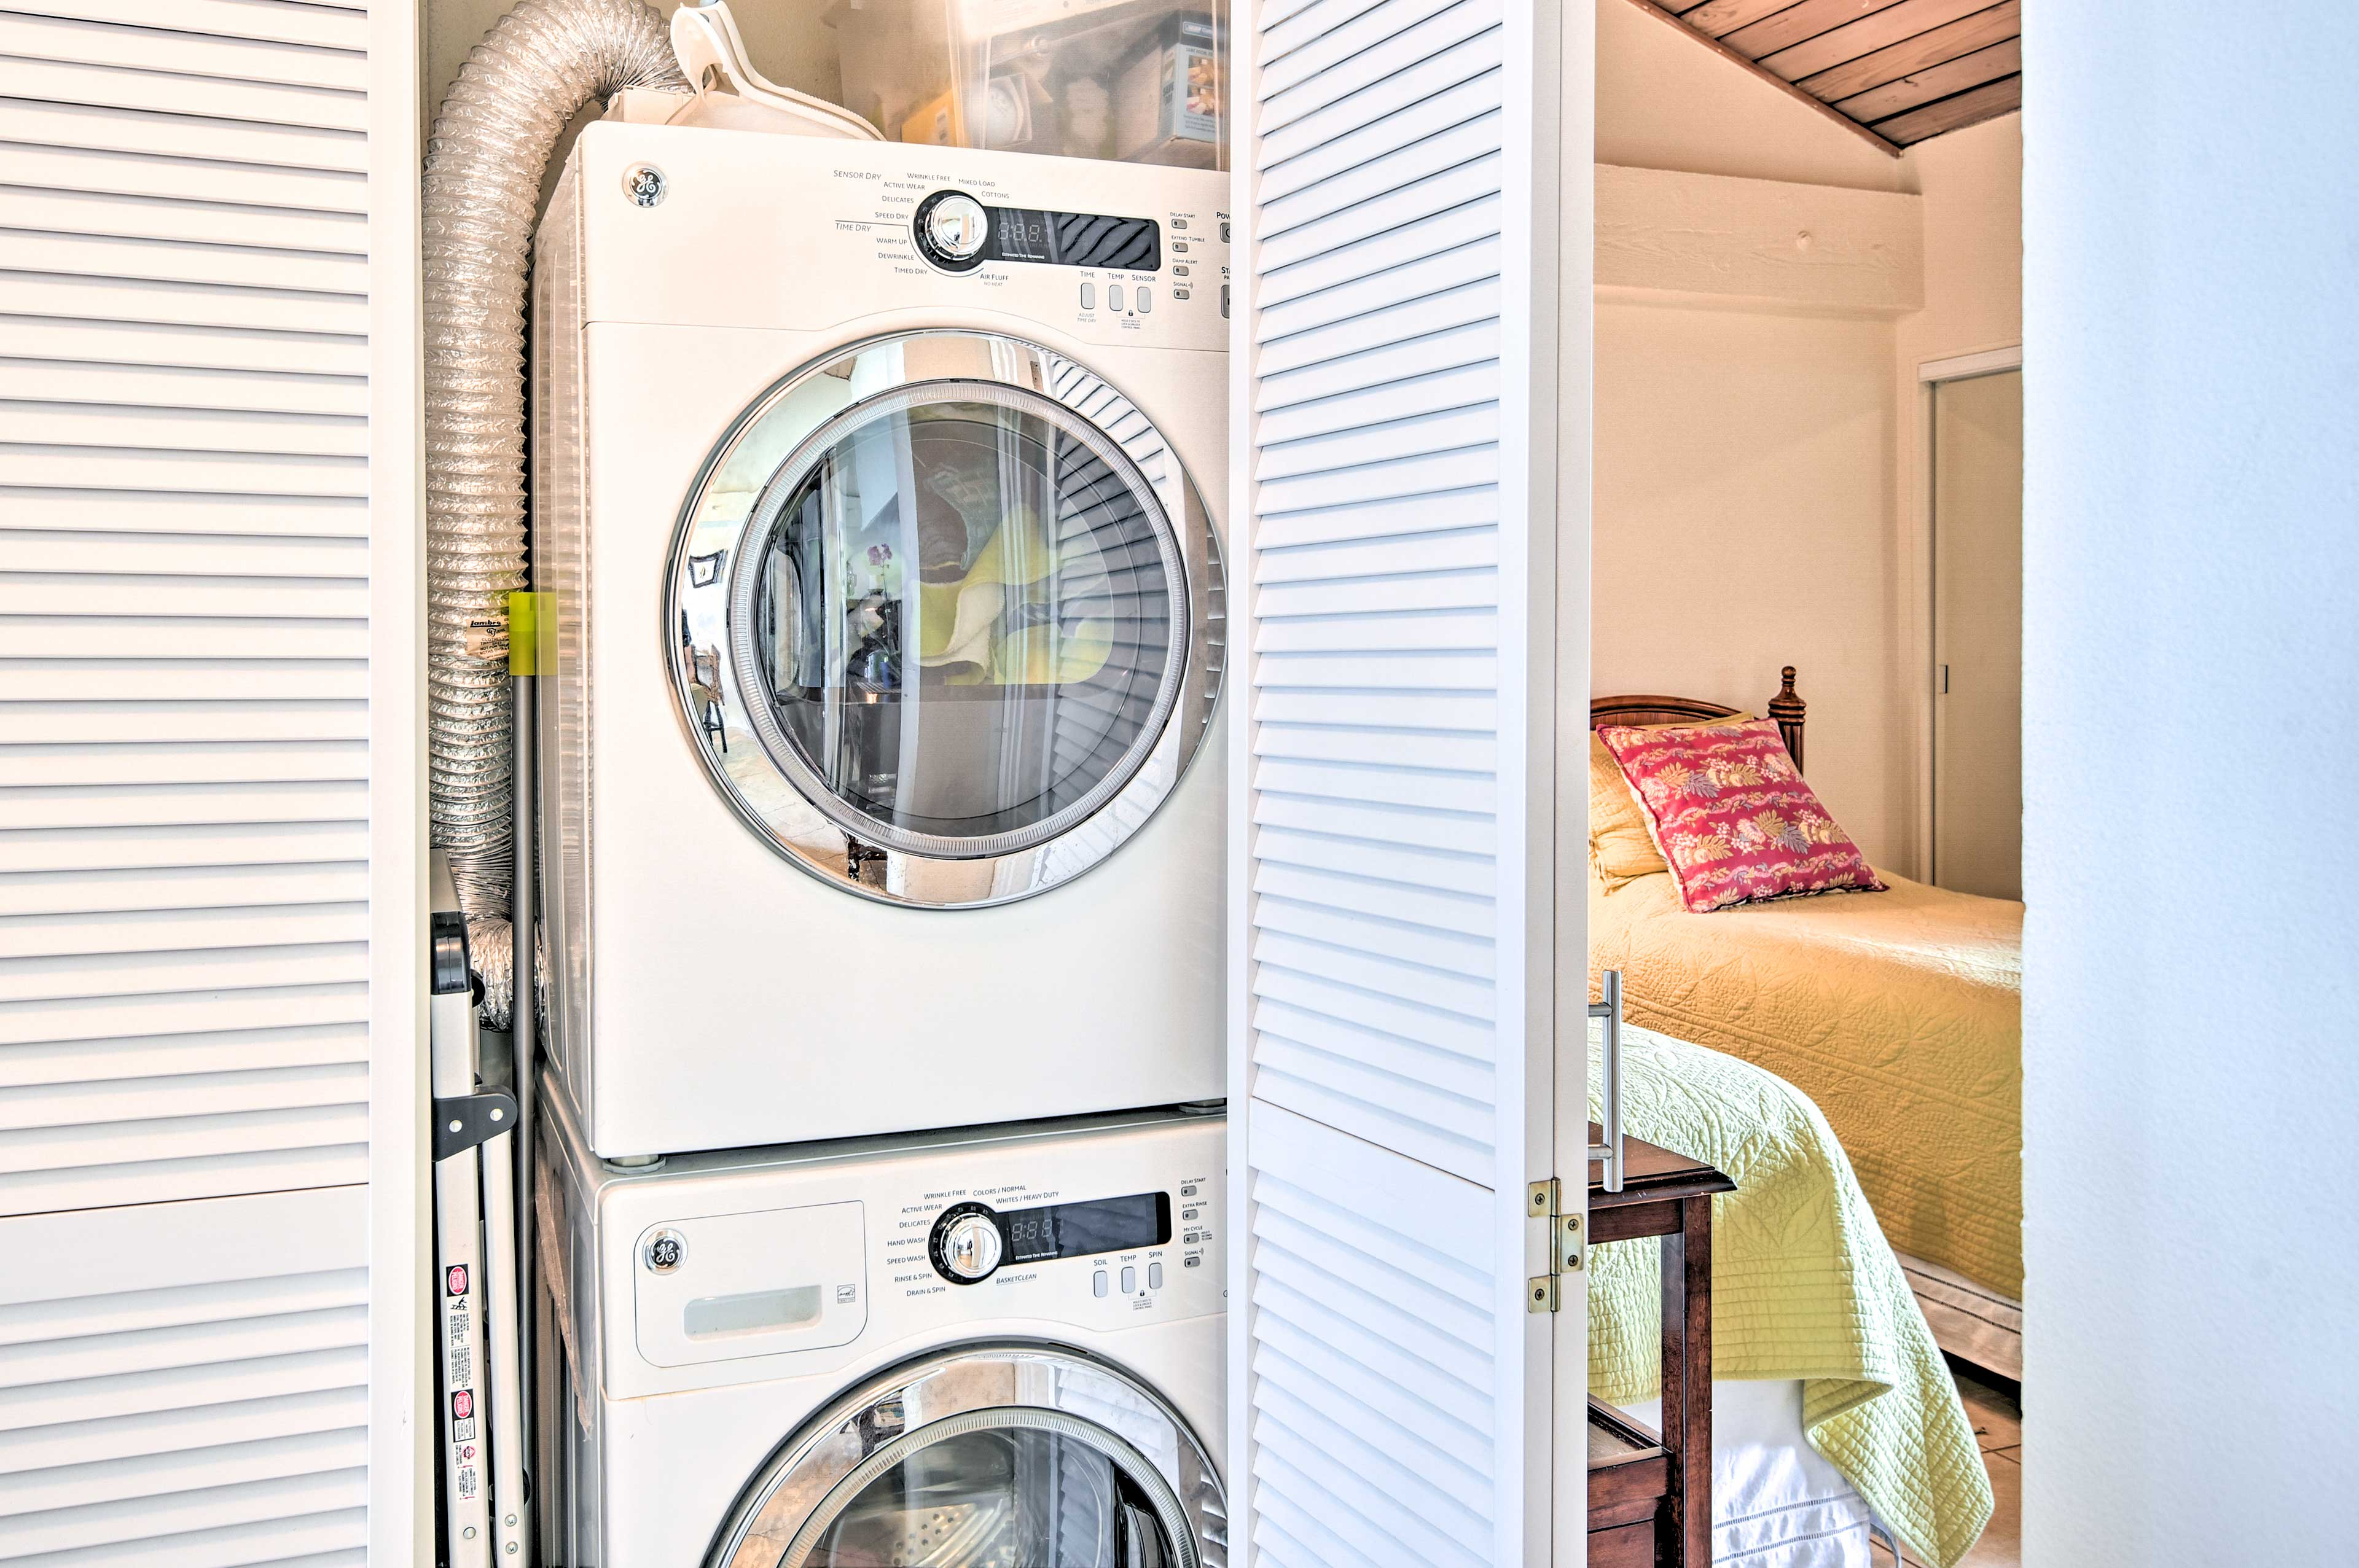 A high-end washer and dryer promise clean clothes.